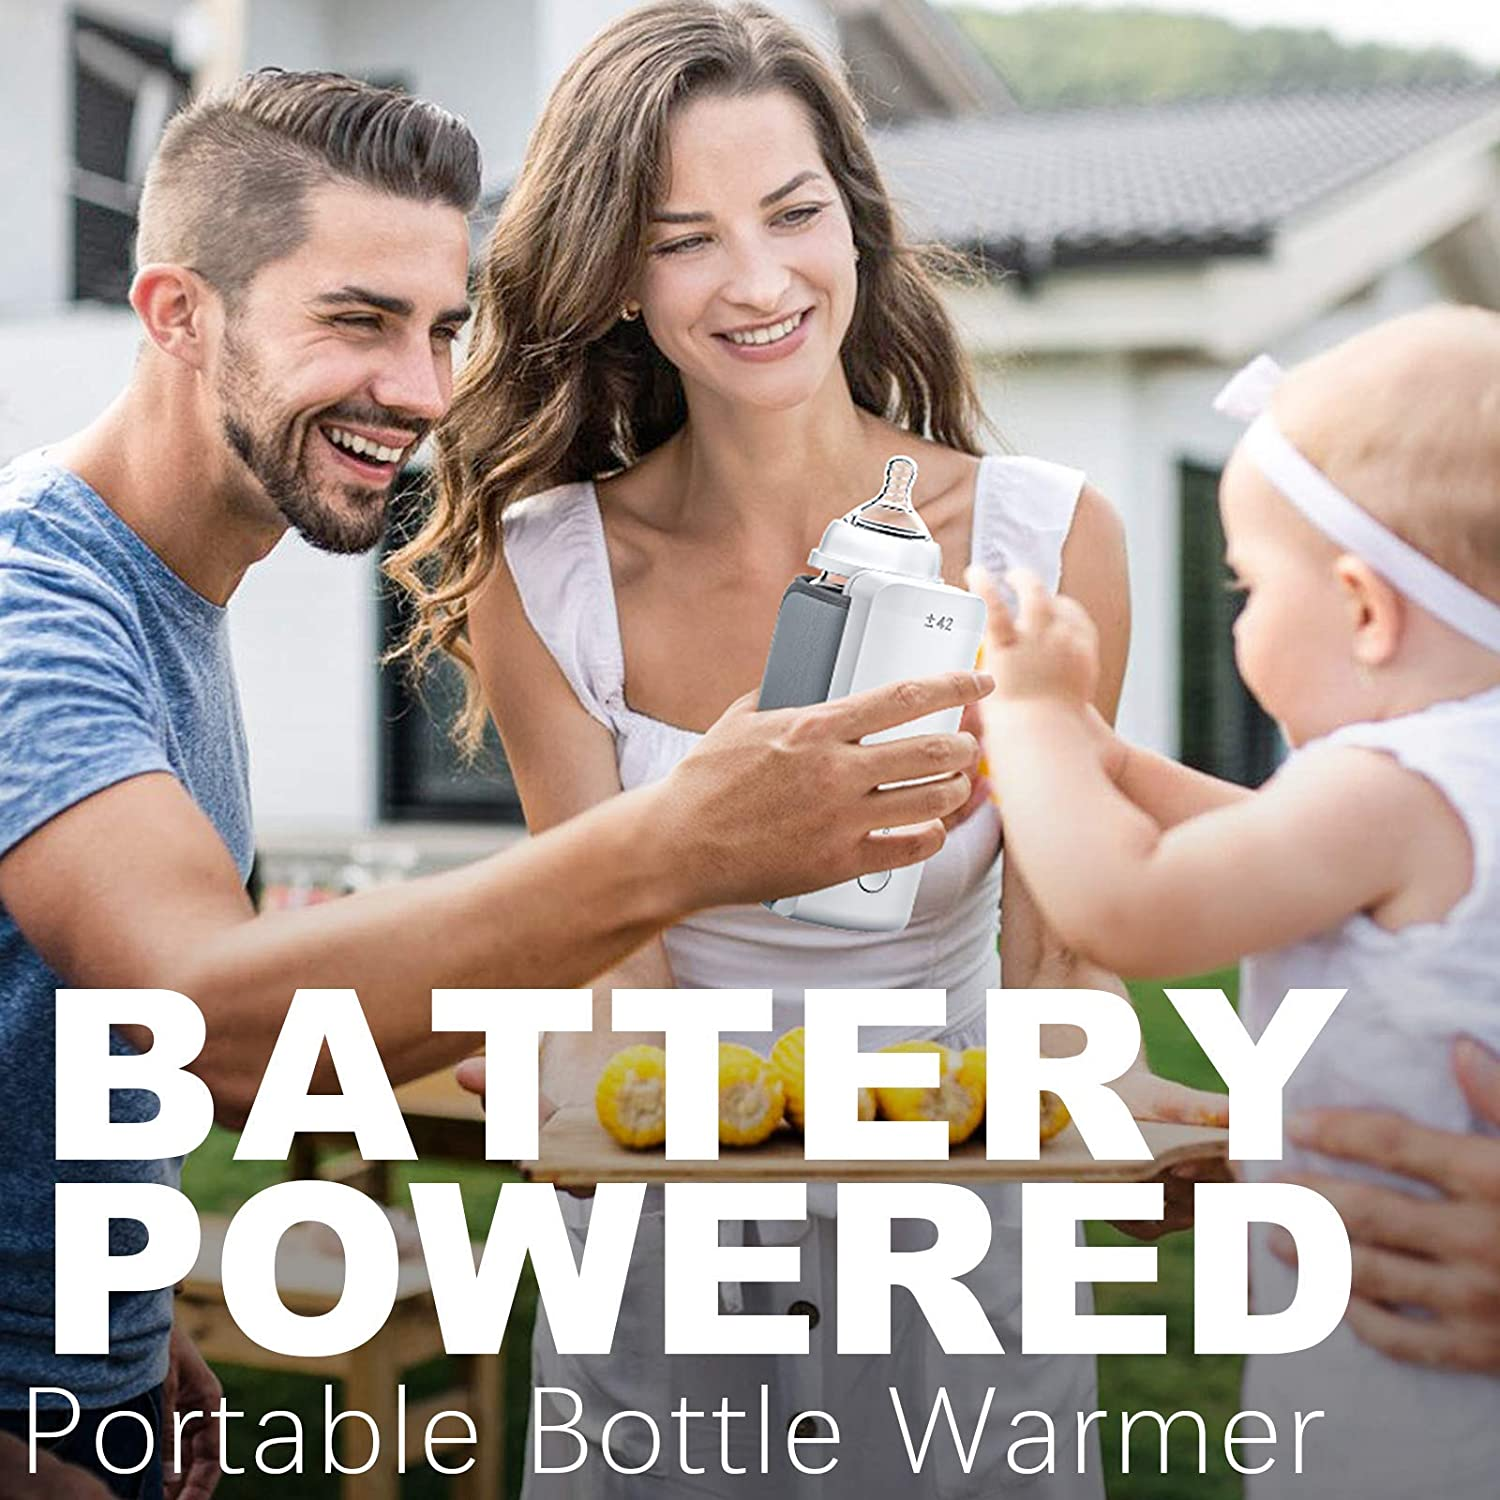 Portable Bottle Warmer for Travel,Build in 5200 mAh Battery Powered,Wireless Warms-Baby Formula or Breast Milk Evenly Without Pour Water,Smart Temperature Control Perfect for Car,On The Go